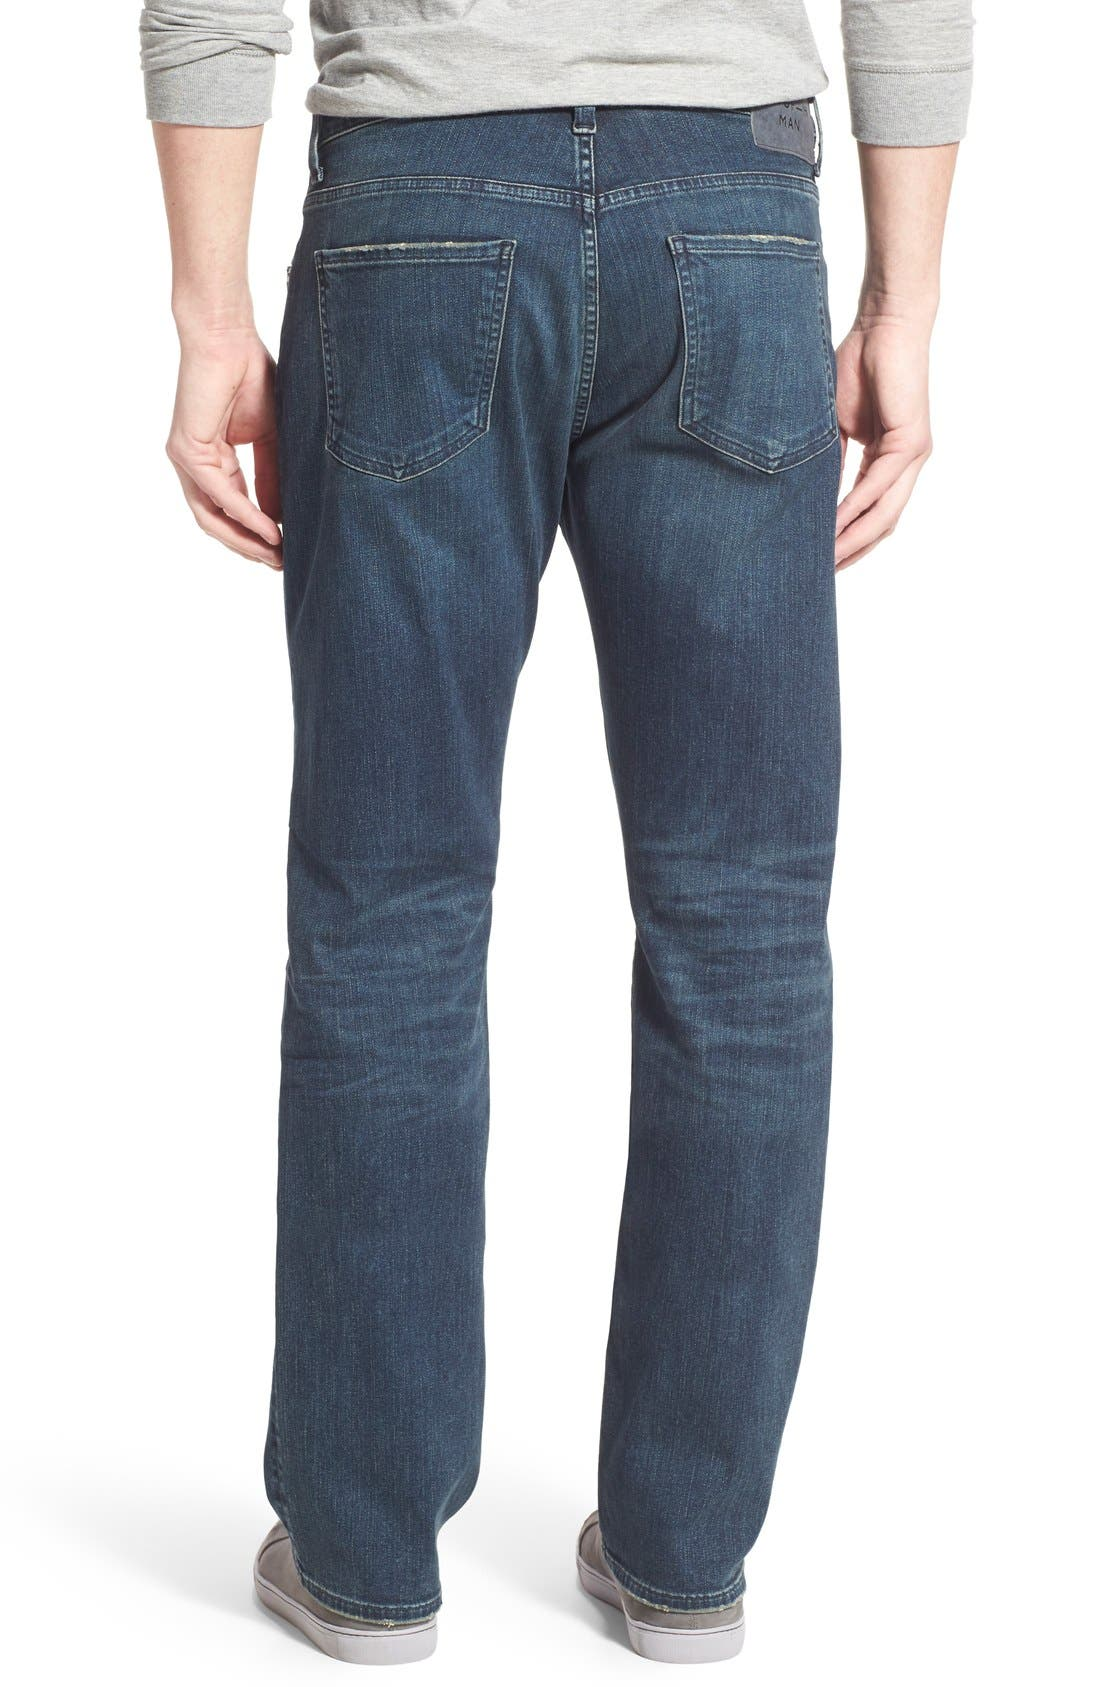 PERFORM - Sid Straight Leg Jeans,                             Alternate thumbnail 8, color,                             NORLAND